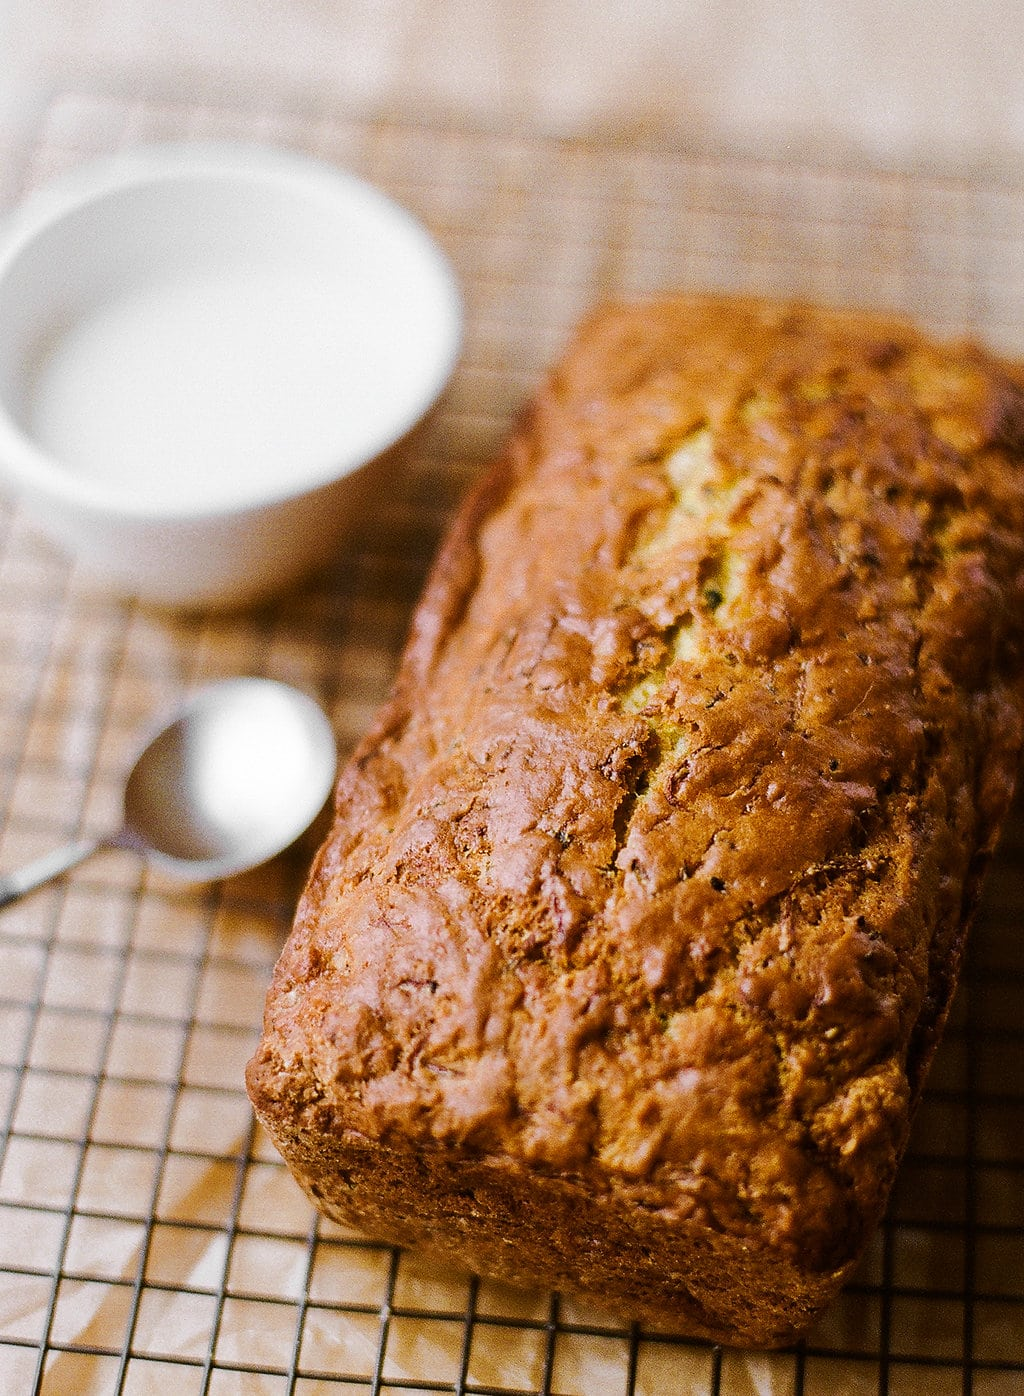 Lemon Yogurt Zucchini Bread is the perfect summer treat! Ultra moist and loaded with bright lemon flavors, everyone will be asking for this recipe.